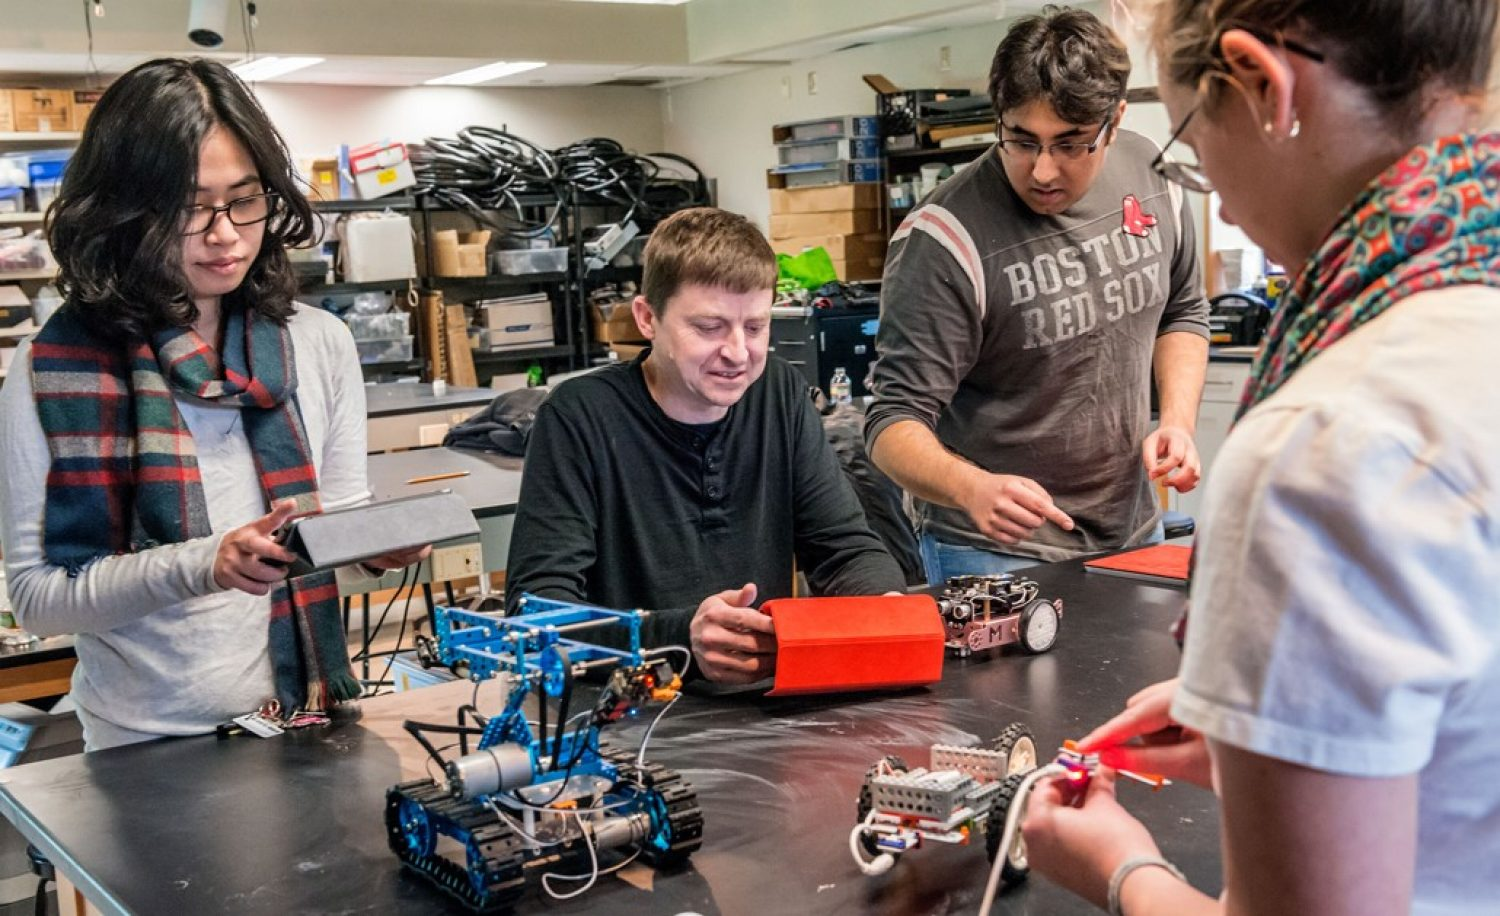 Michael Barnett working with students on a robotics project | Photo by Gary Gilbert